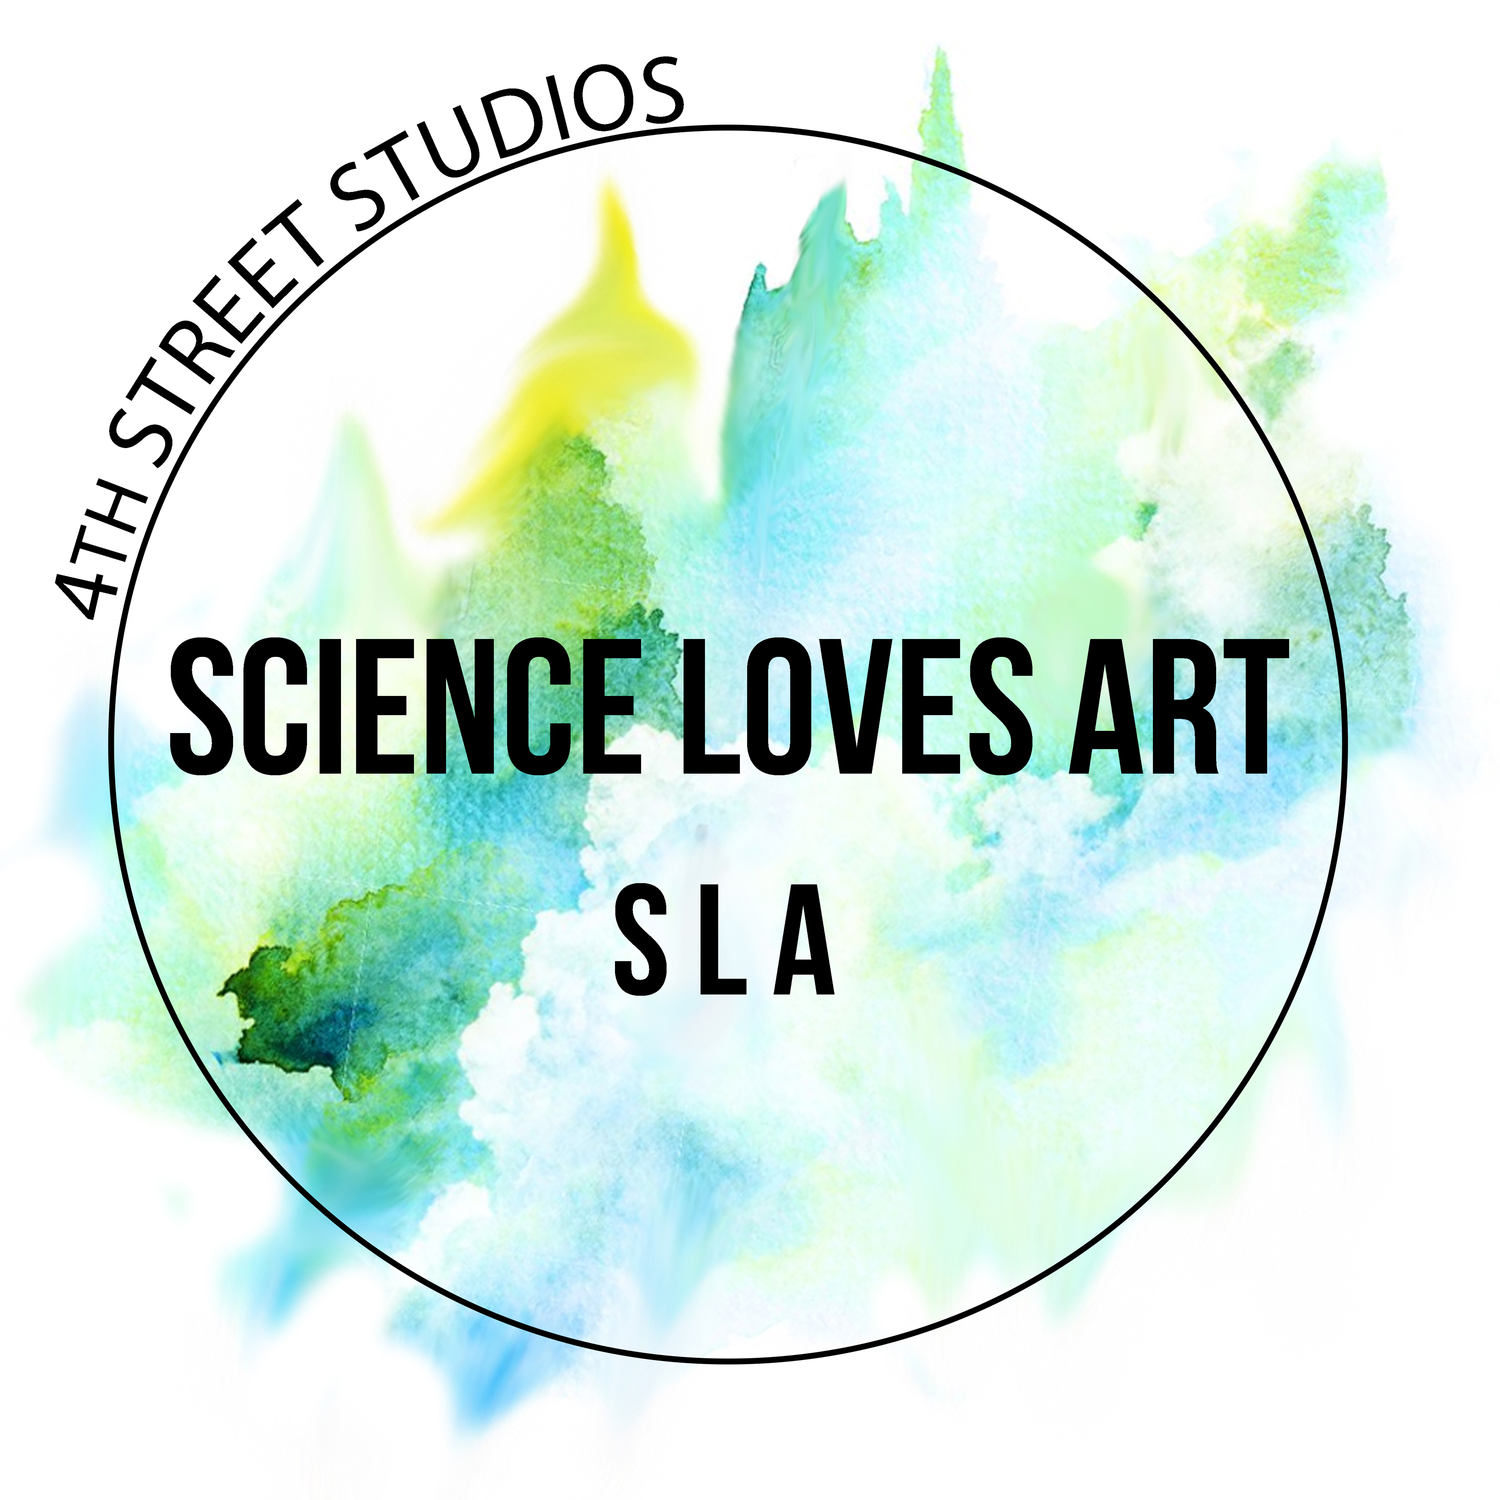 Science Loves Art